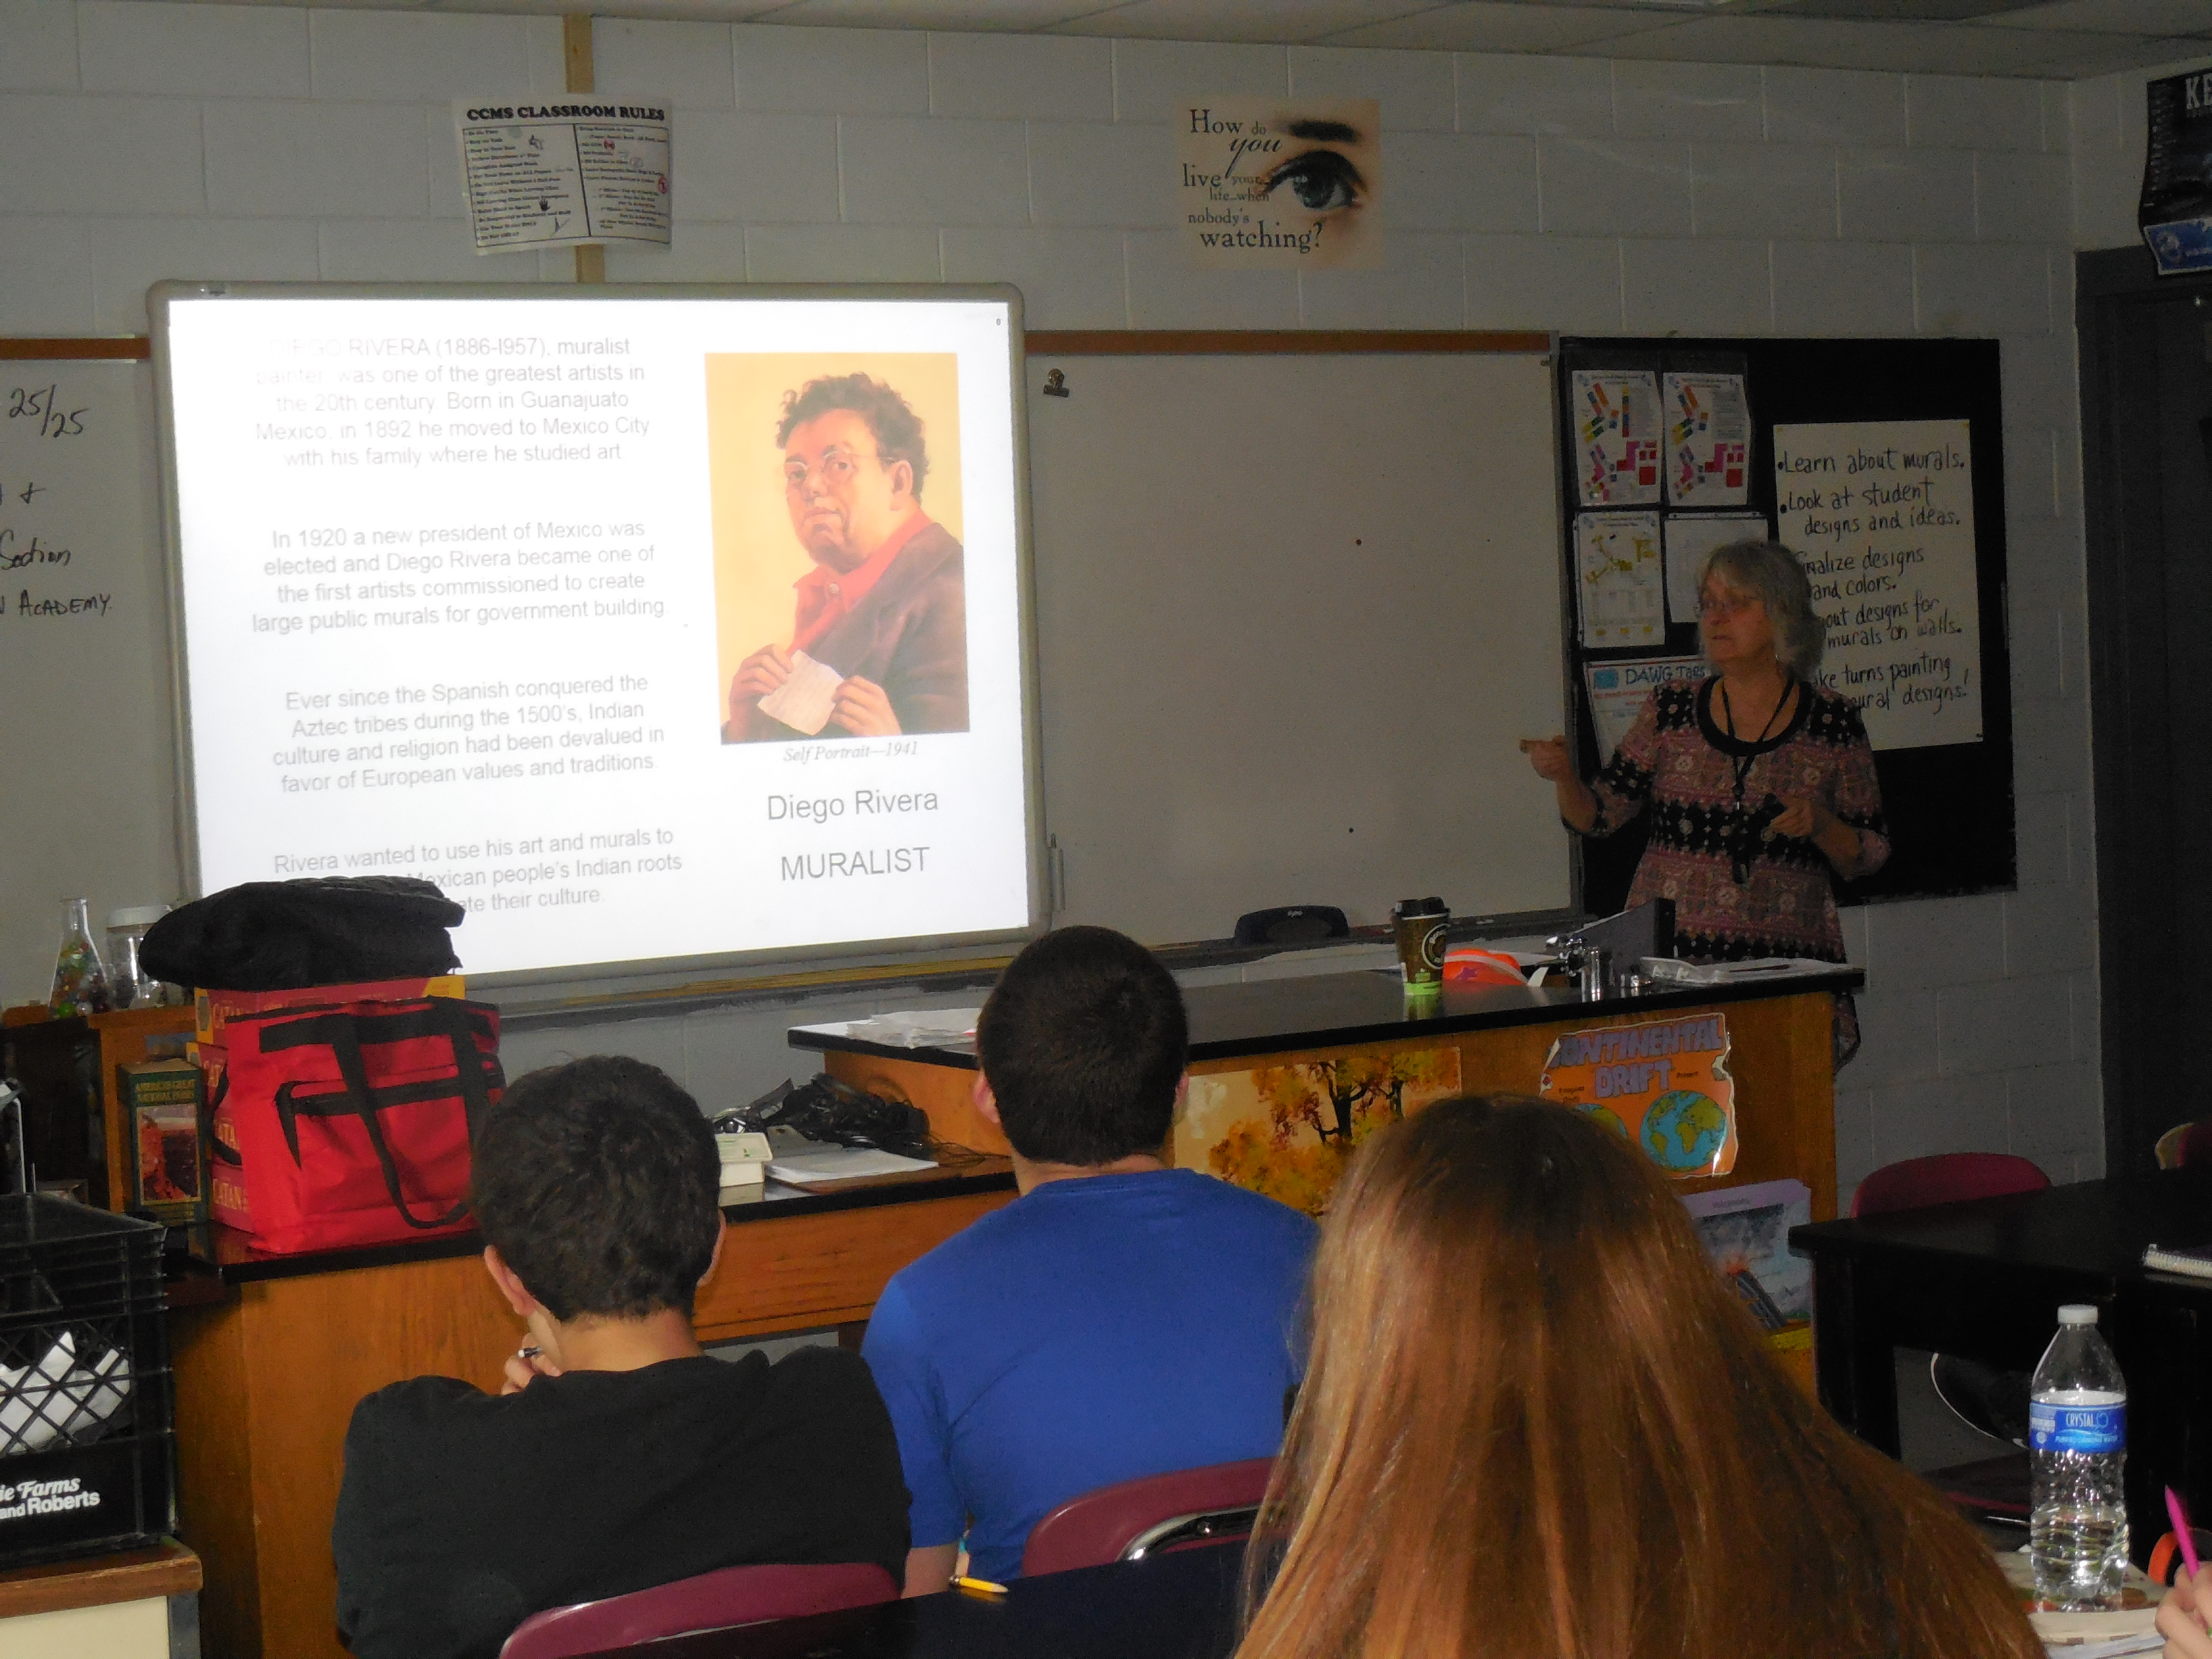 Ms. Pat Ritter is pictured below discussing murals with the students and looking over their sketches on the first day.